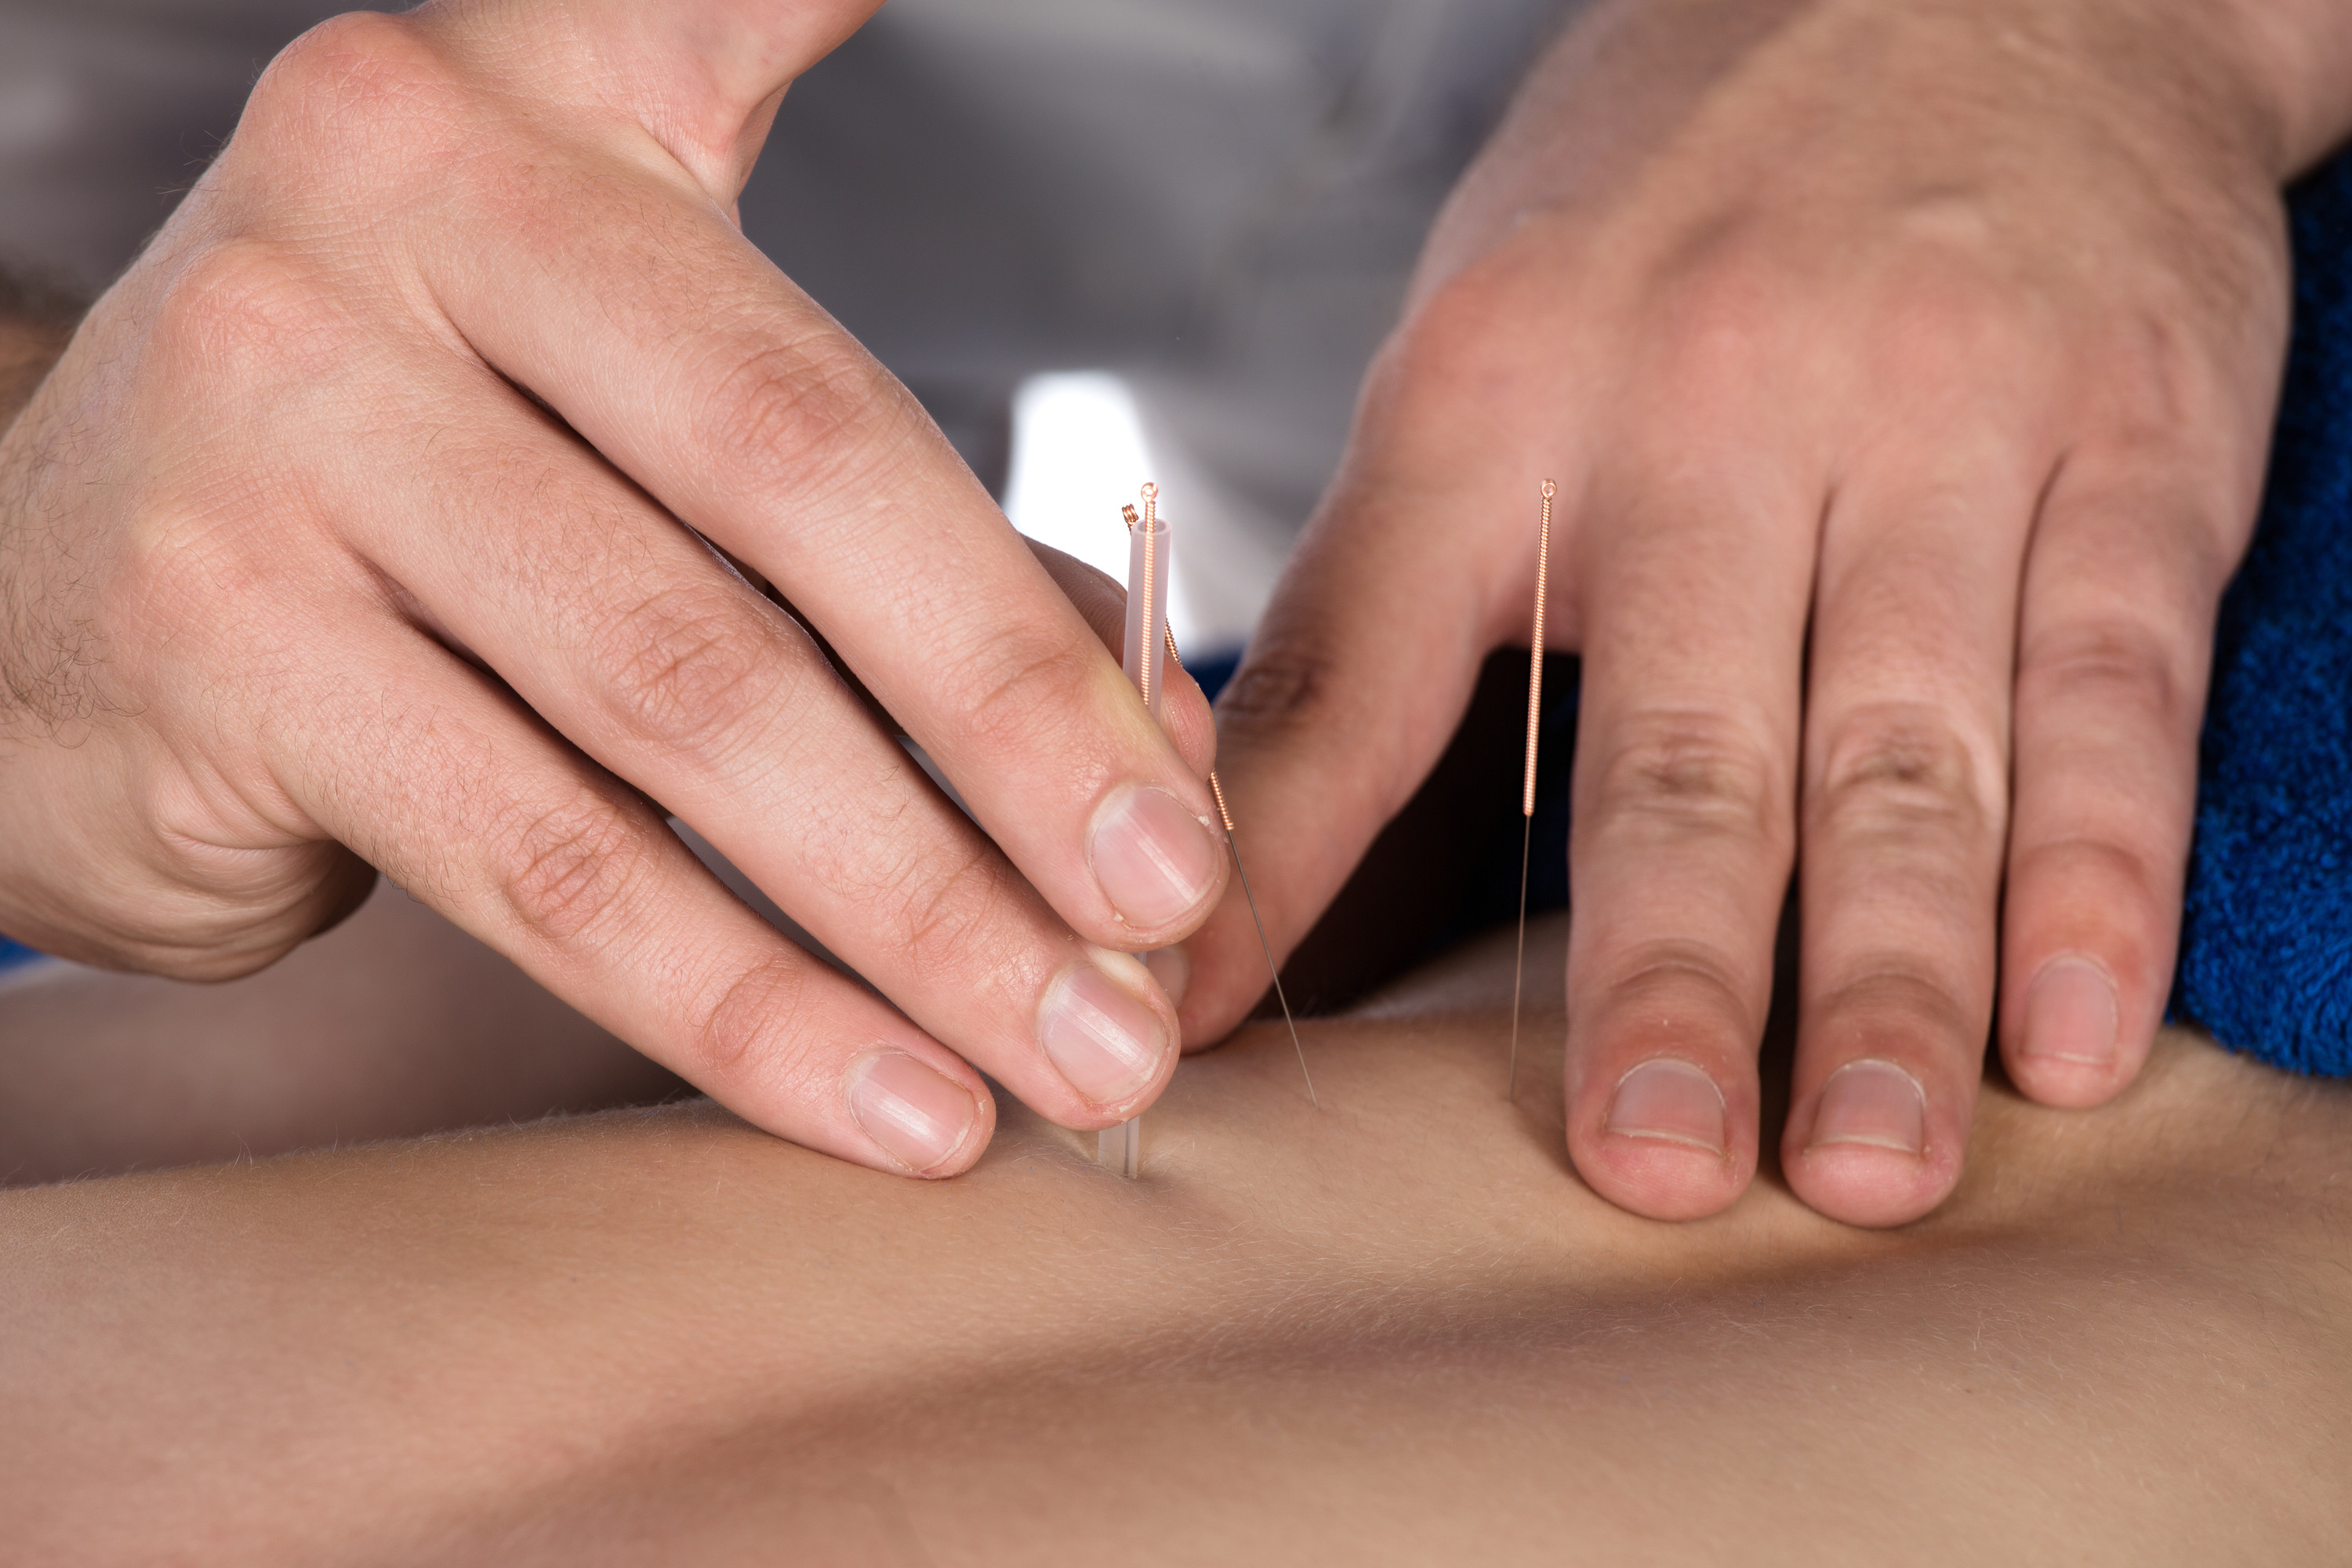 acupuncture treatment - needle placement